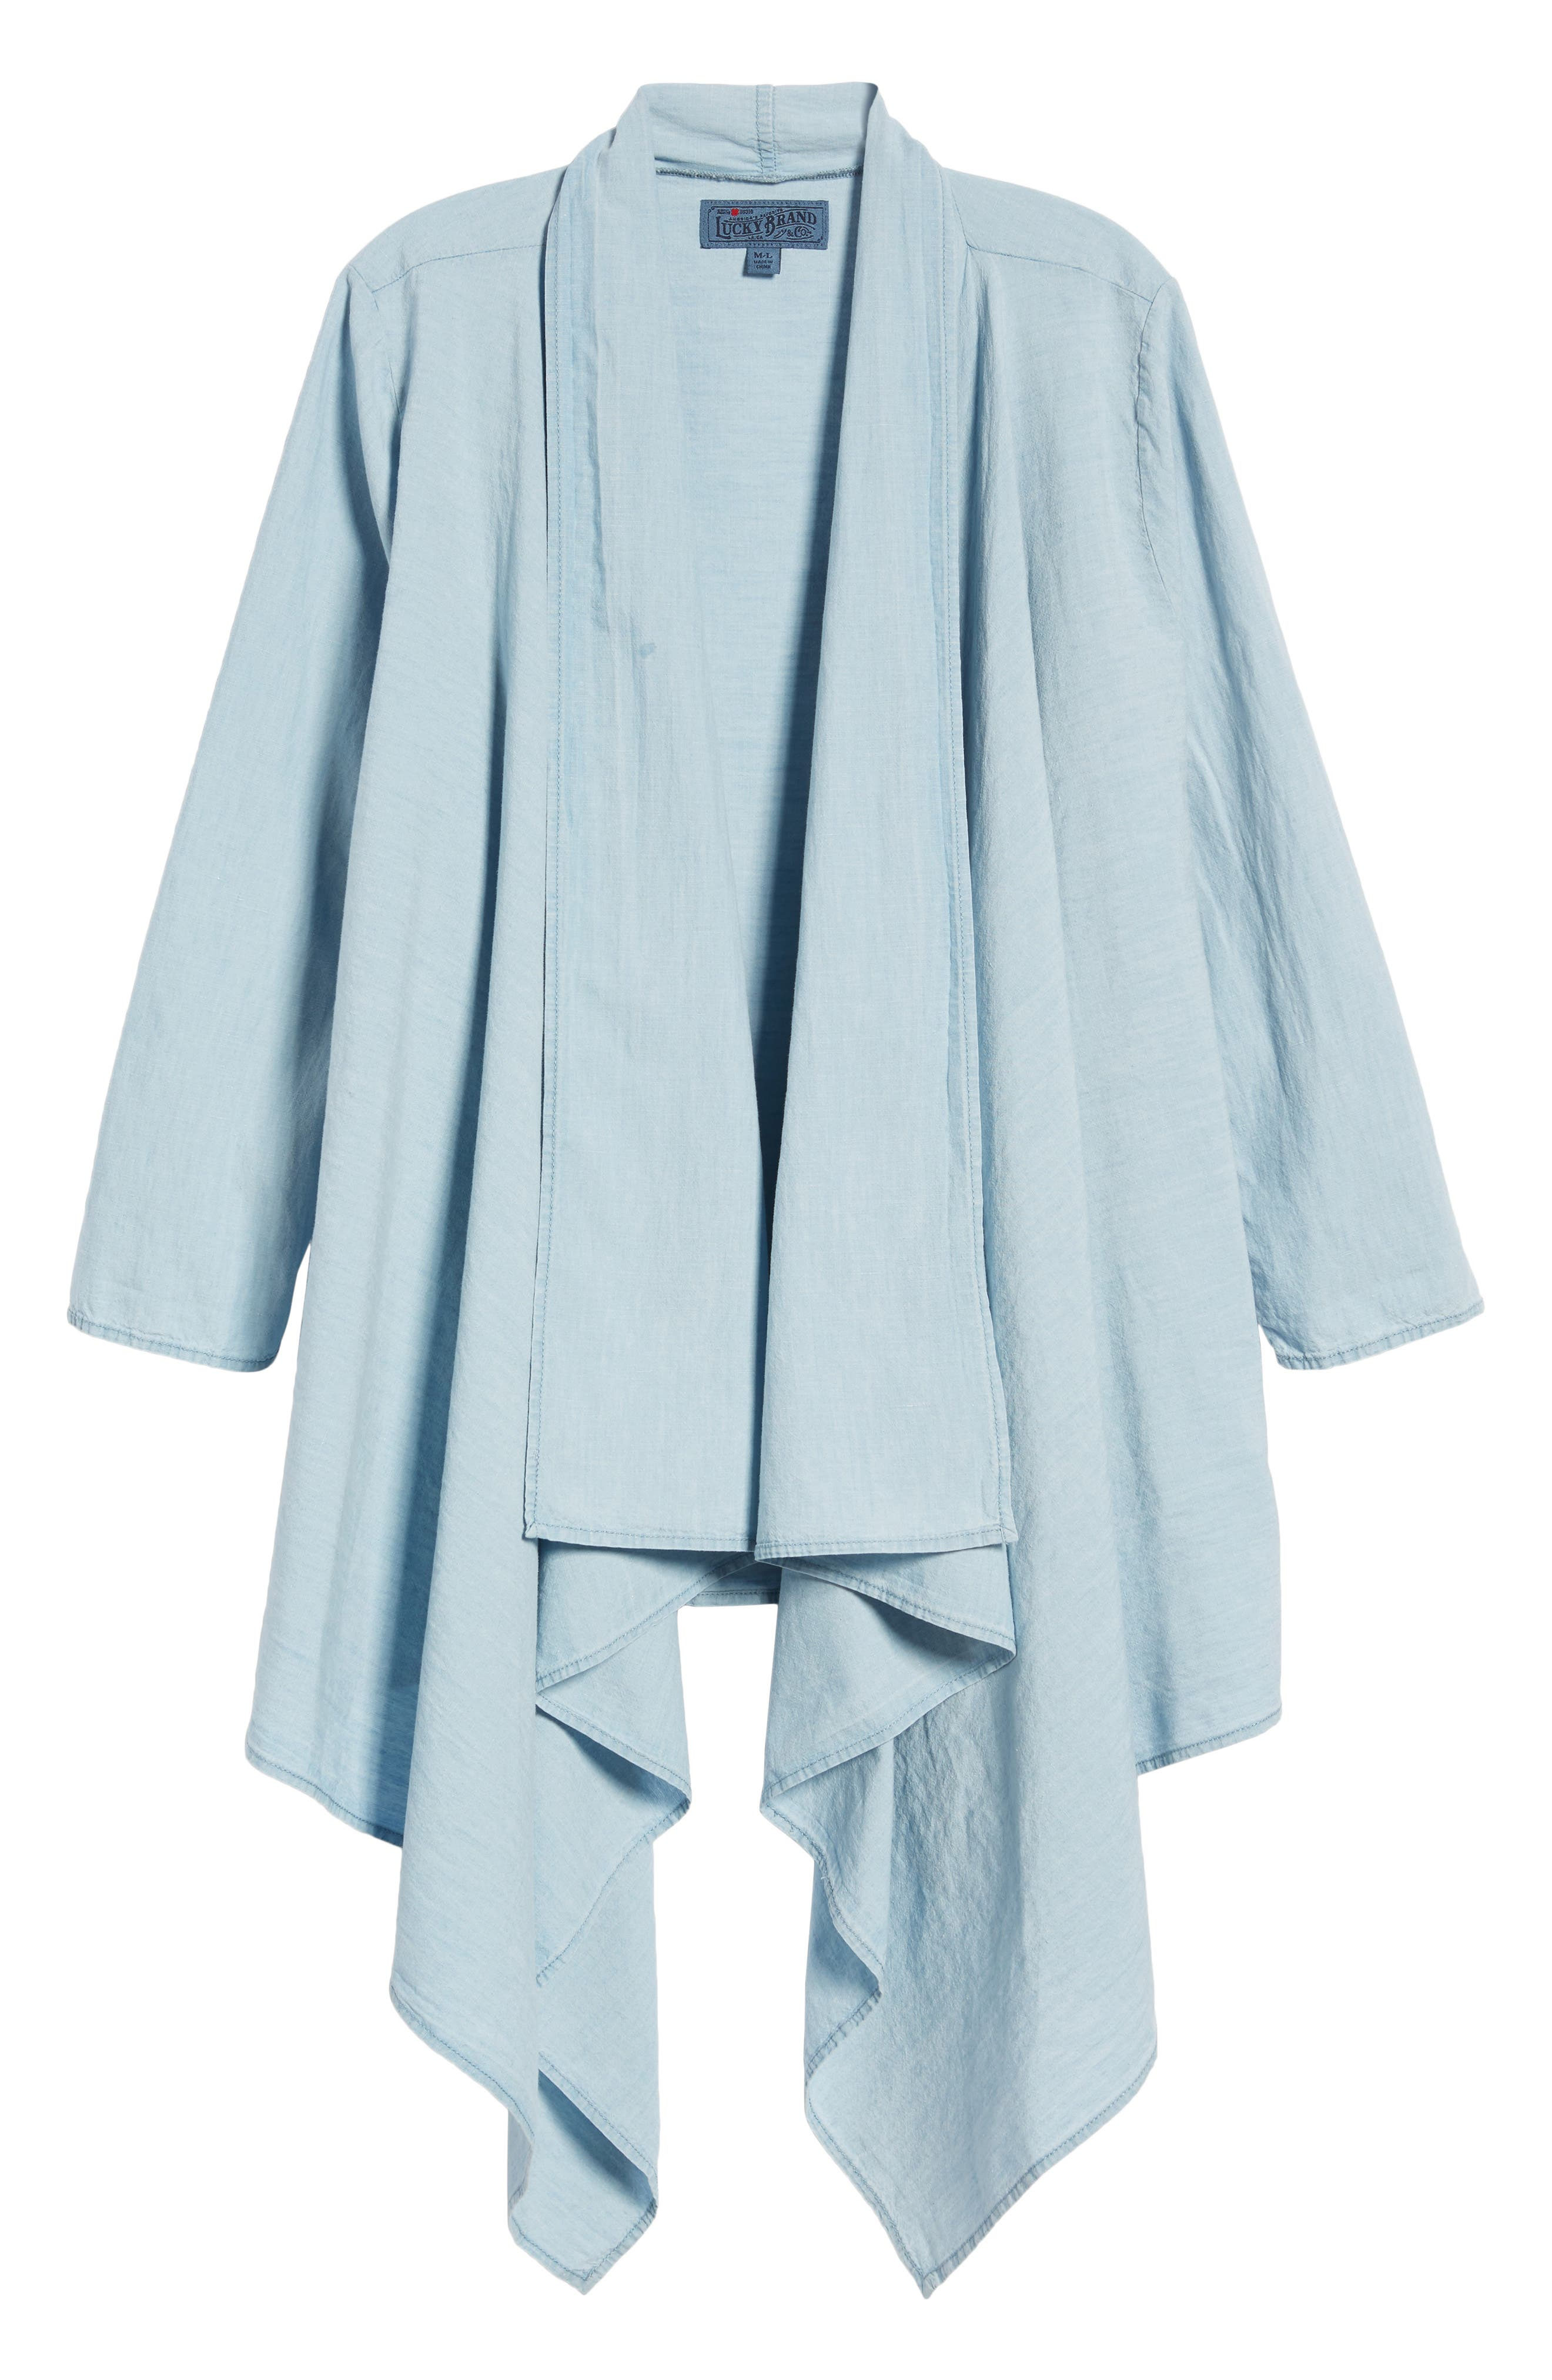 Lucky Draped Top,                             Alternate thumbnail 7, color,                             Myrtle